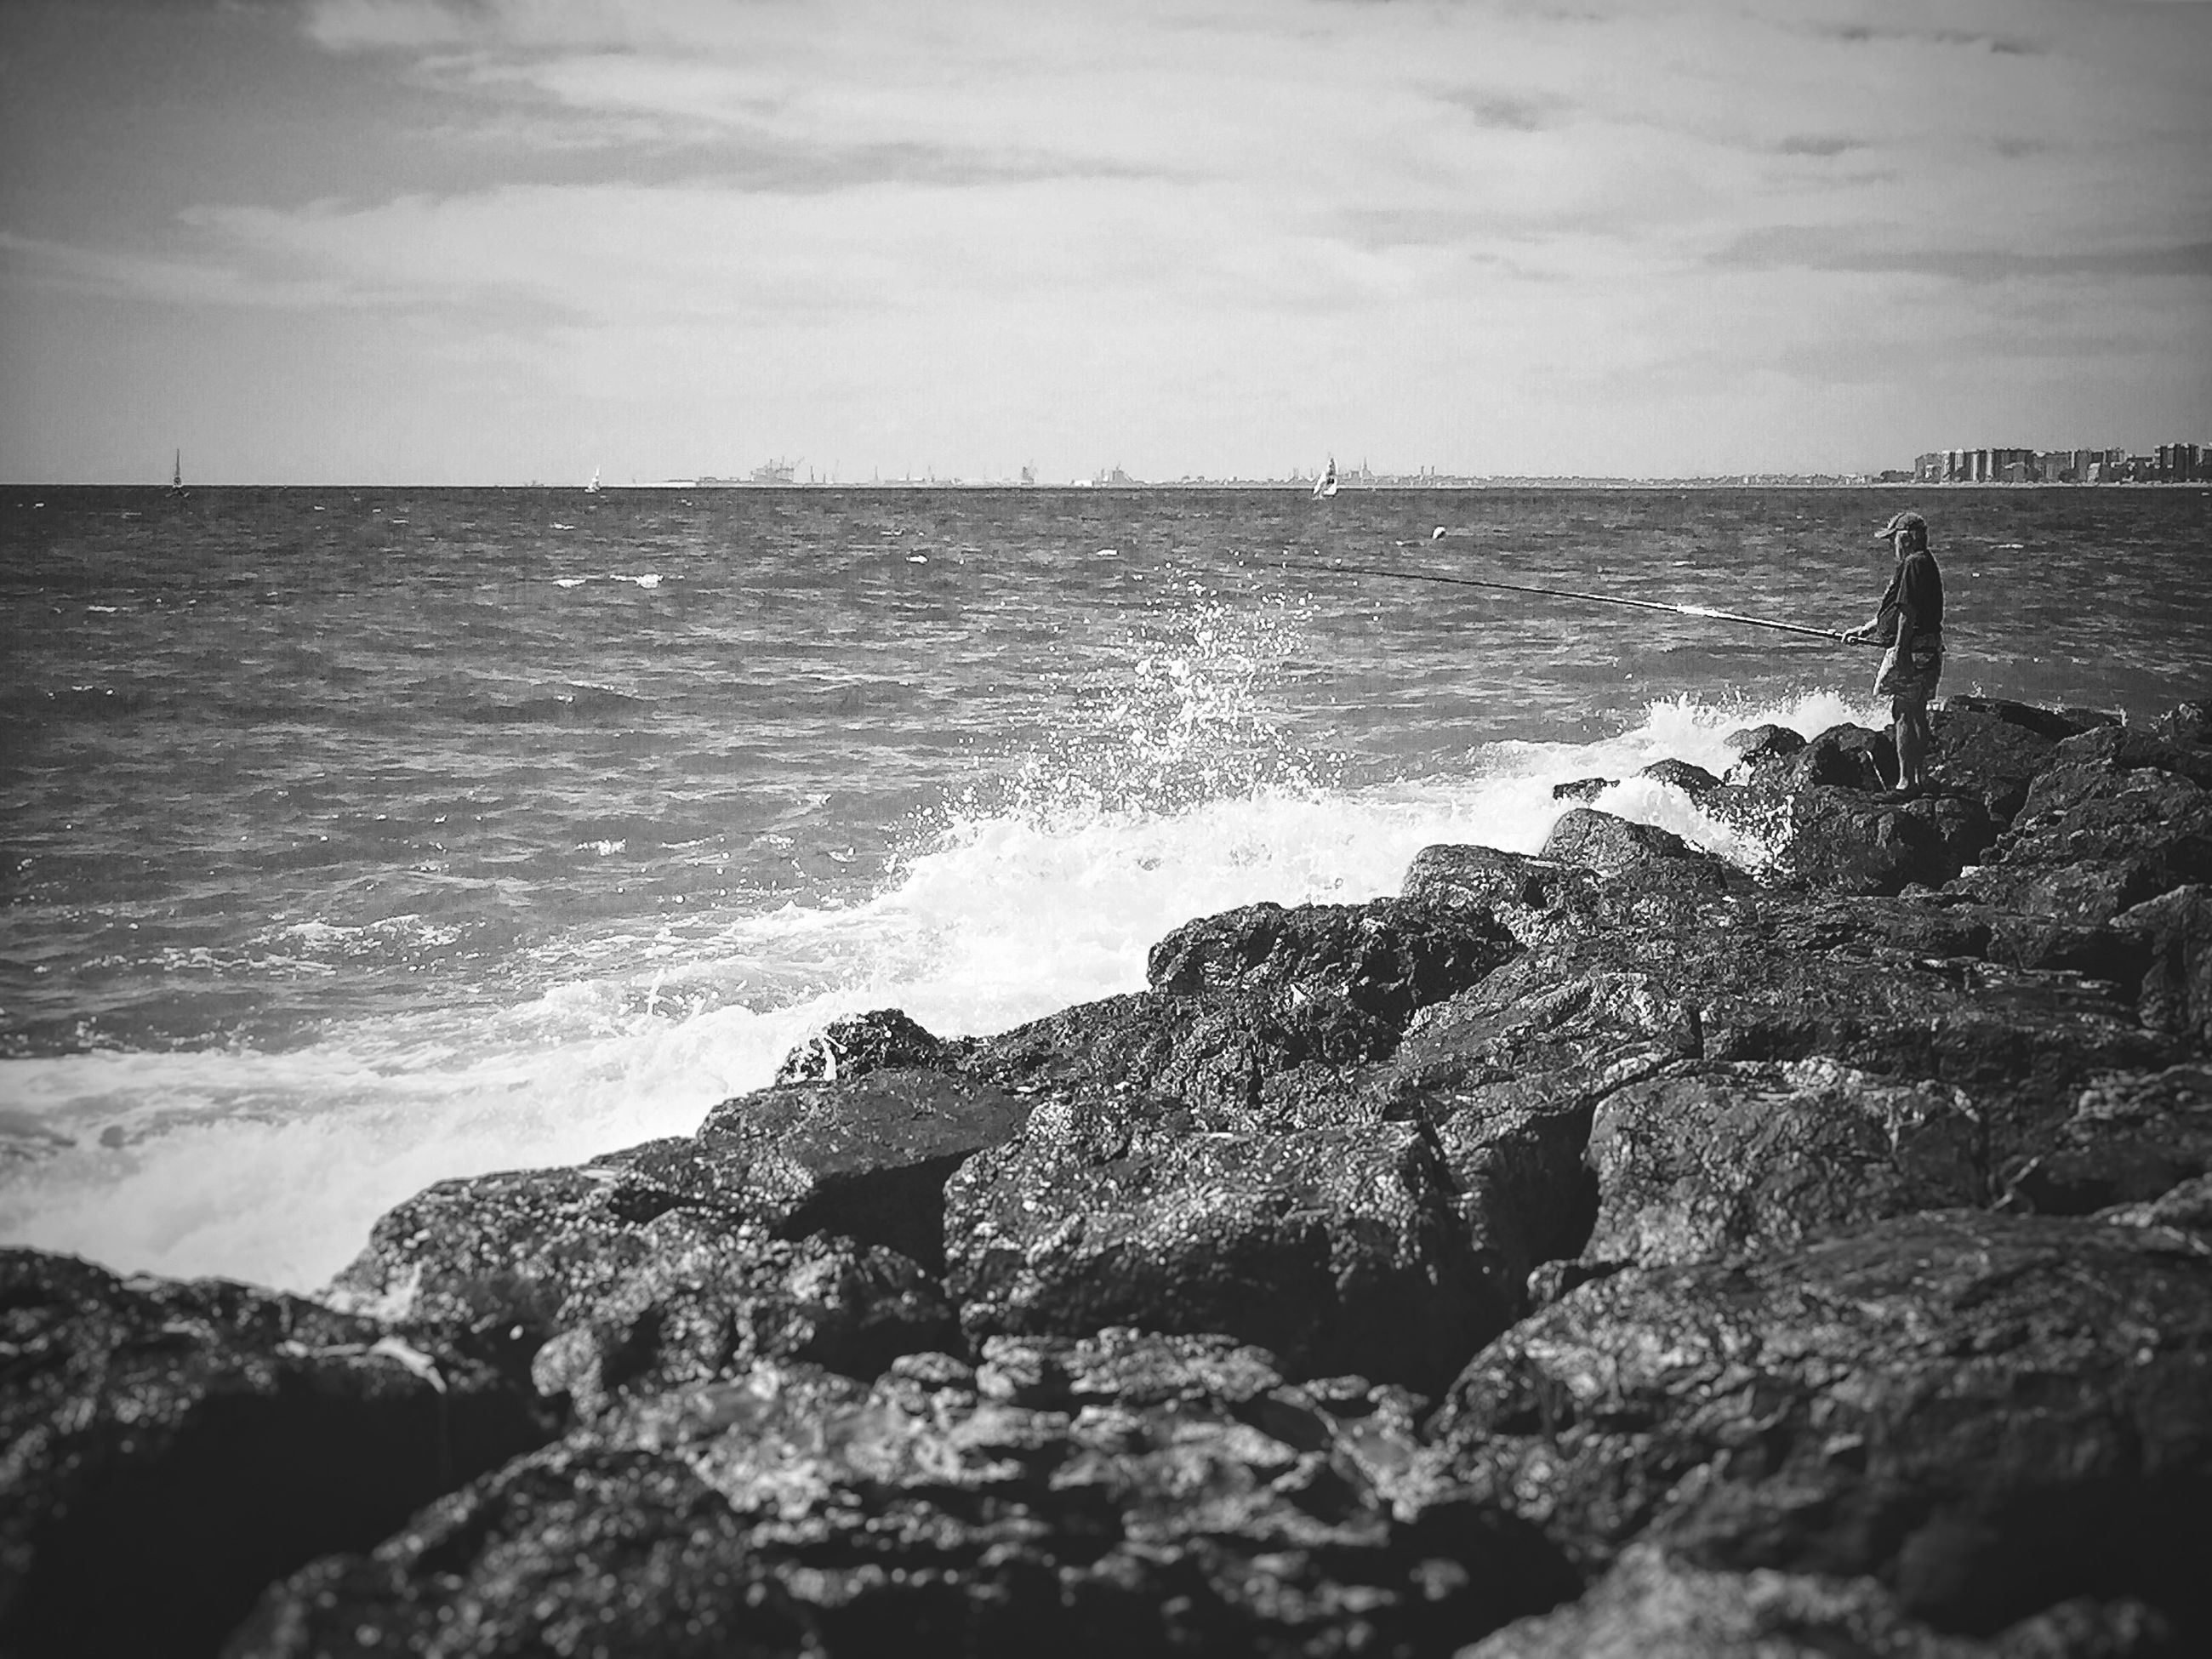 sea, horizon over water, water, scenics, beauty in nature, sky, tranquil scene, rock - object, tranquility, beach, nature, shore, wave, rock formation, rock, idyllic, cliff, surf, coastline, remote